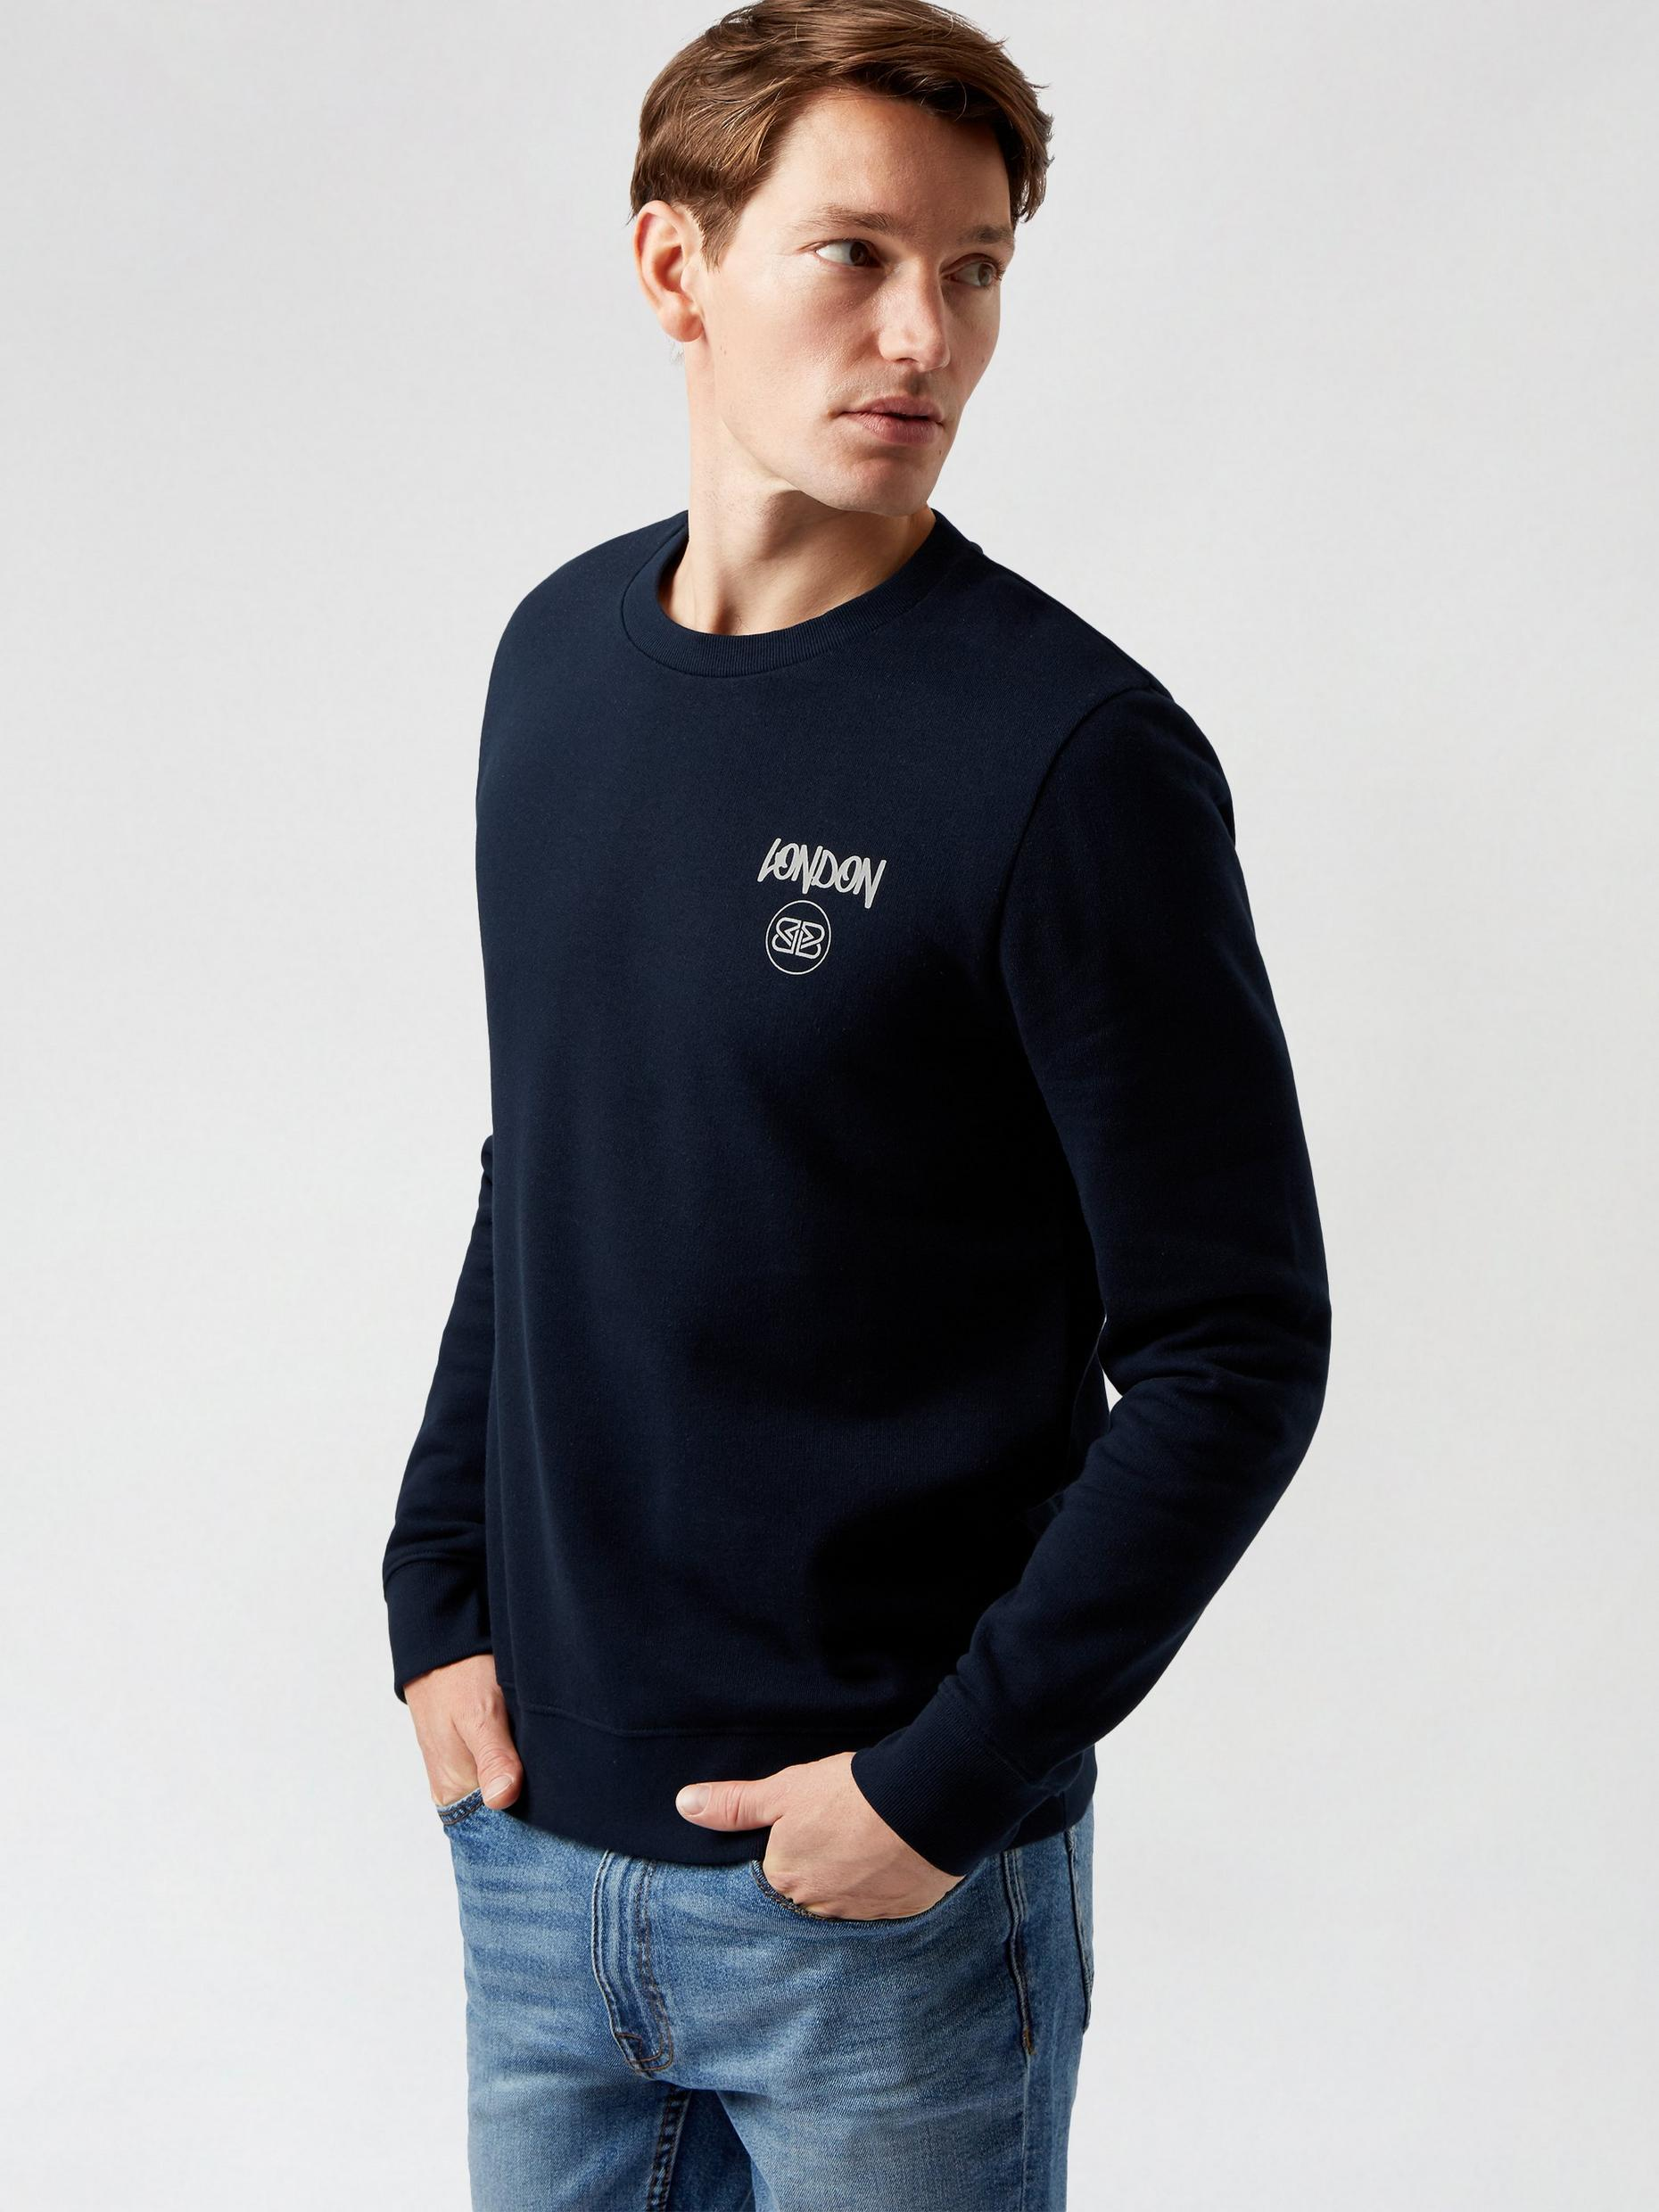 Navy London Graphic Sweatshirt